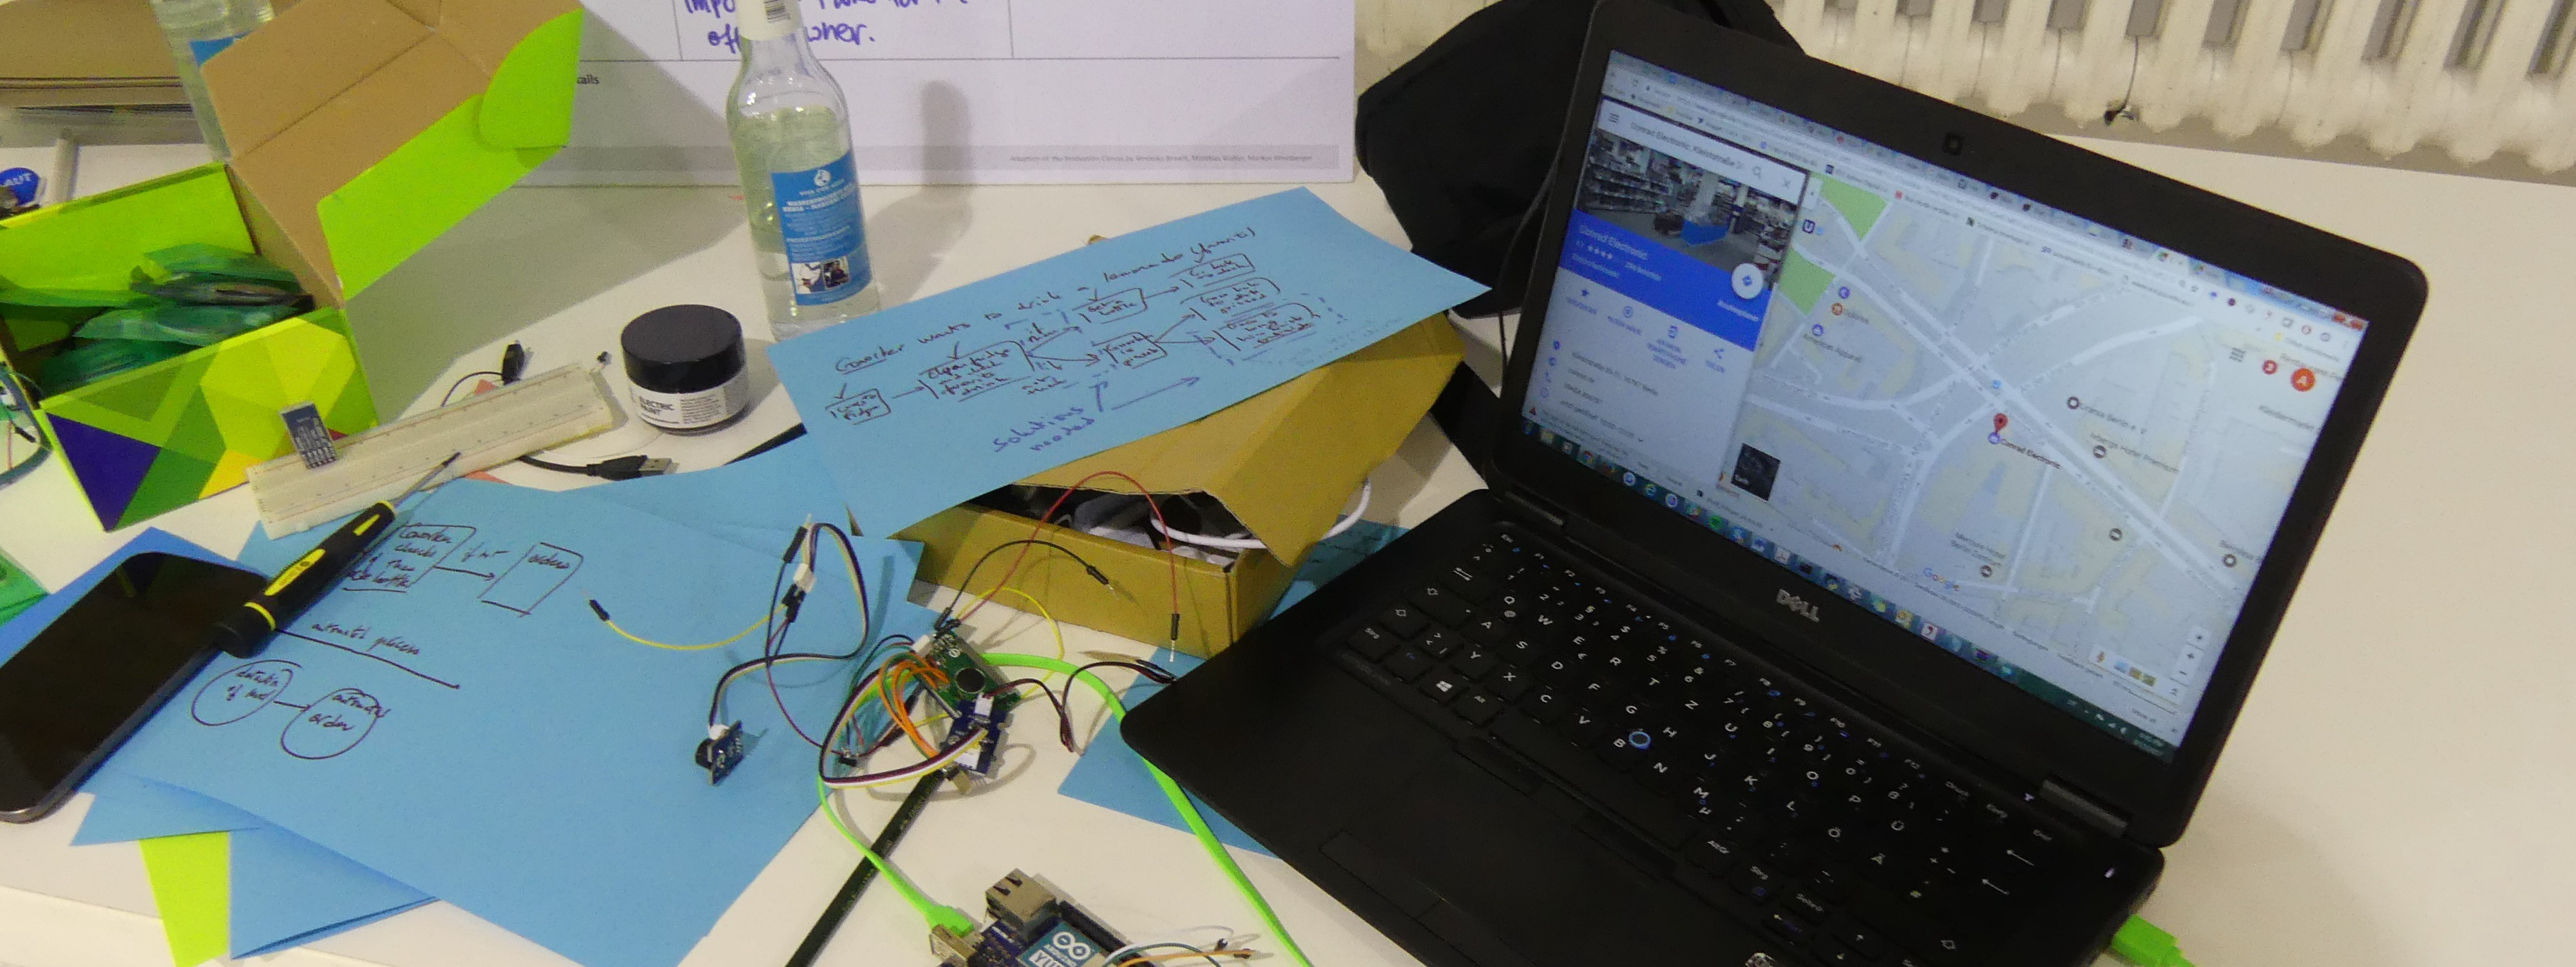 A Hackathon Prototyping Journey Prototyping Journey In An Iot By Aida Boukhris Medium